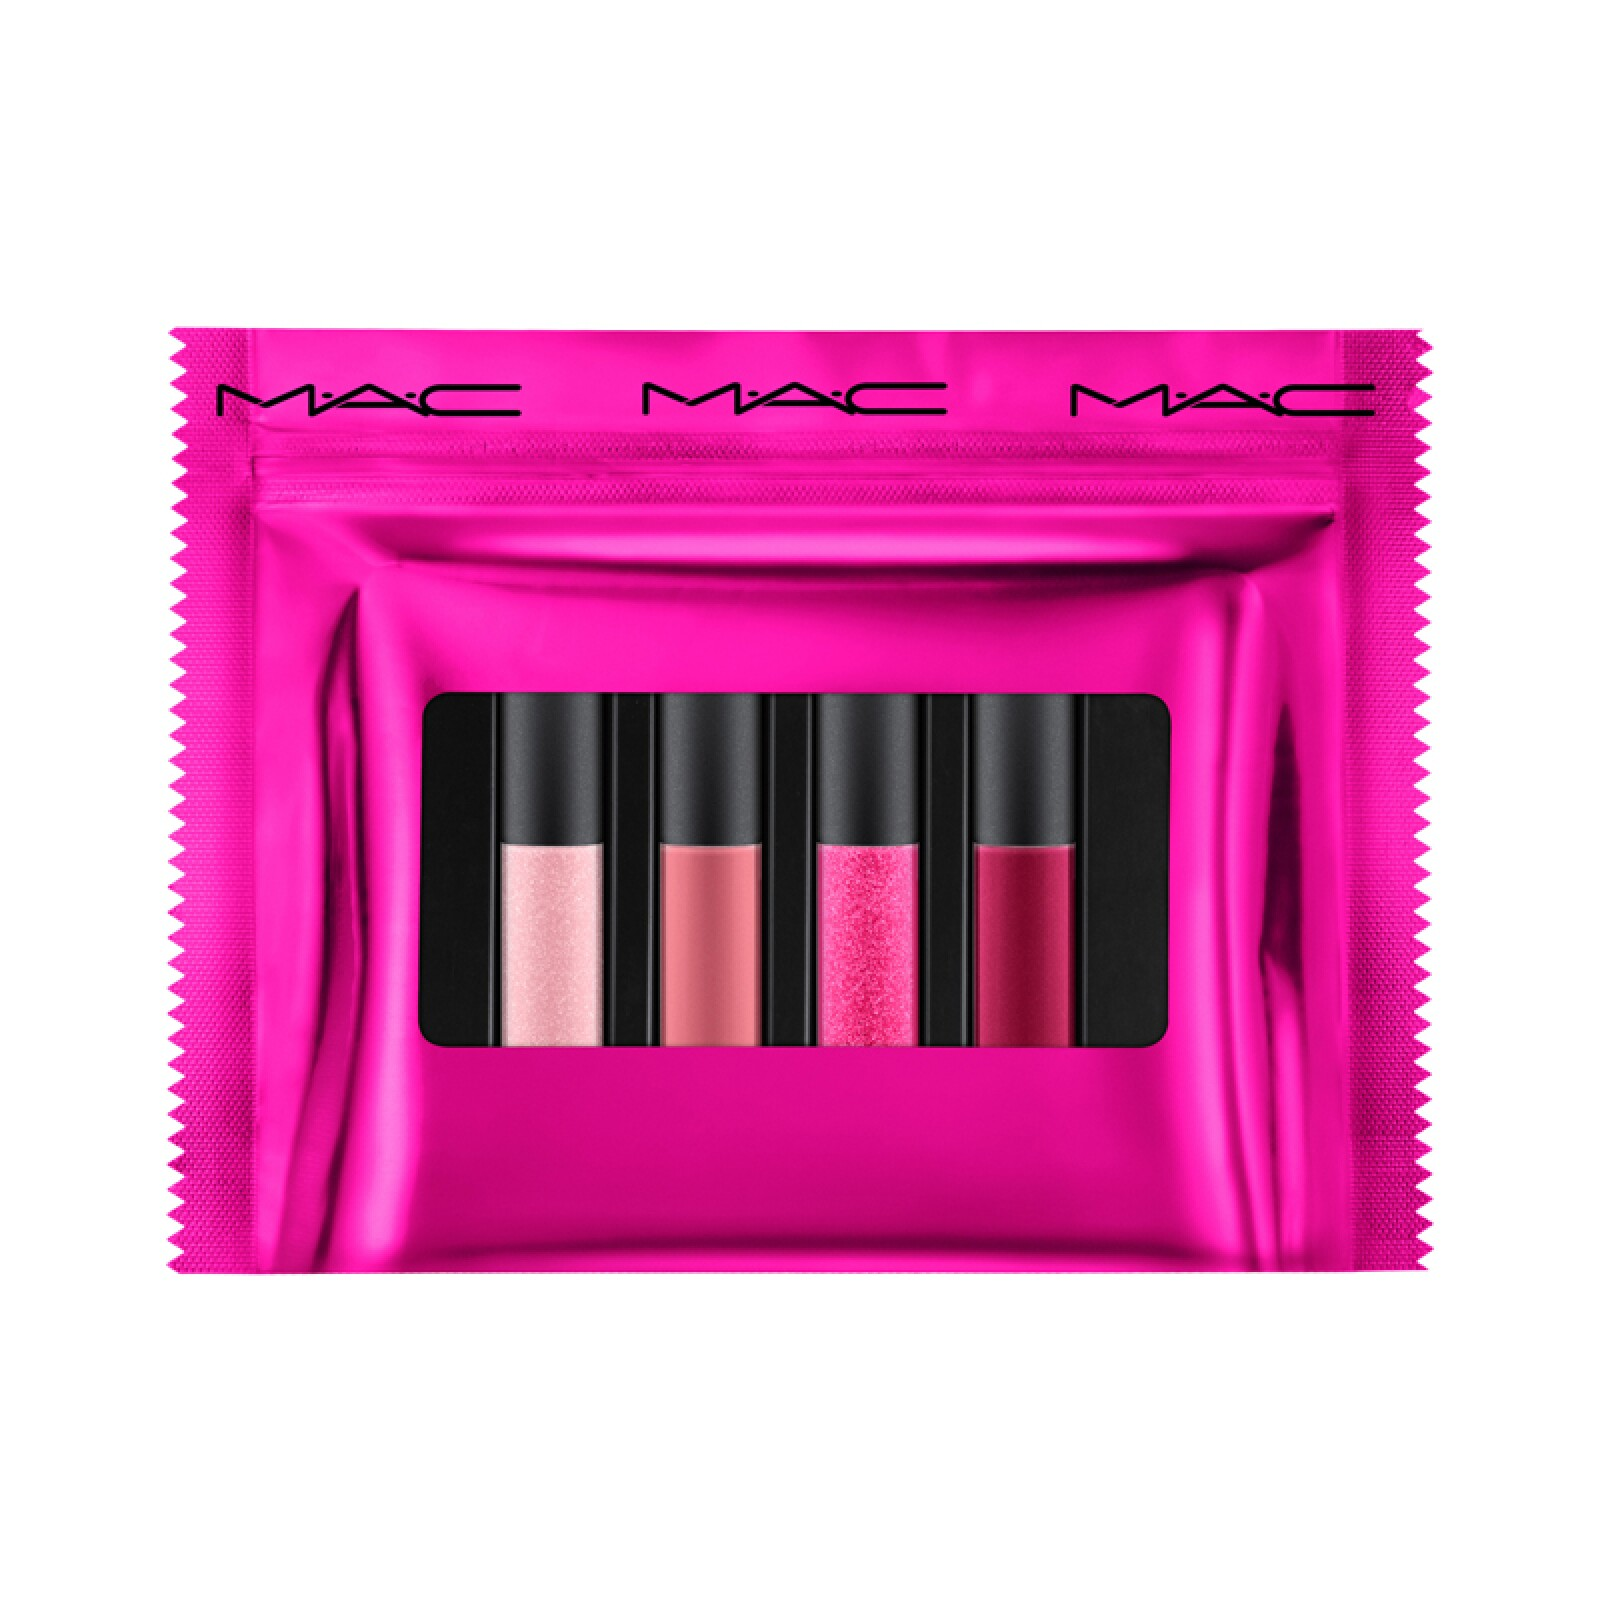 M.A.C-Shiny-Pretty-Things-Party-Favours-Mini-Lip-Glosses-Pink.jpg